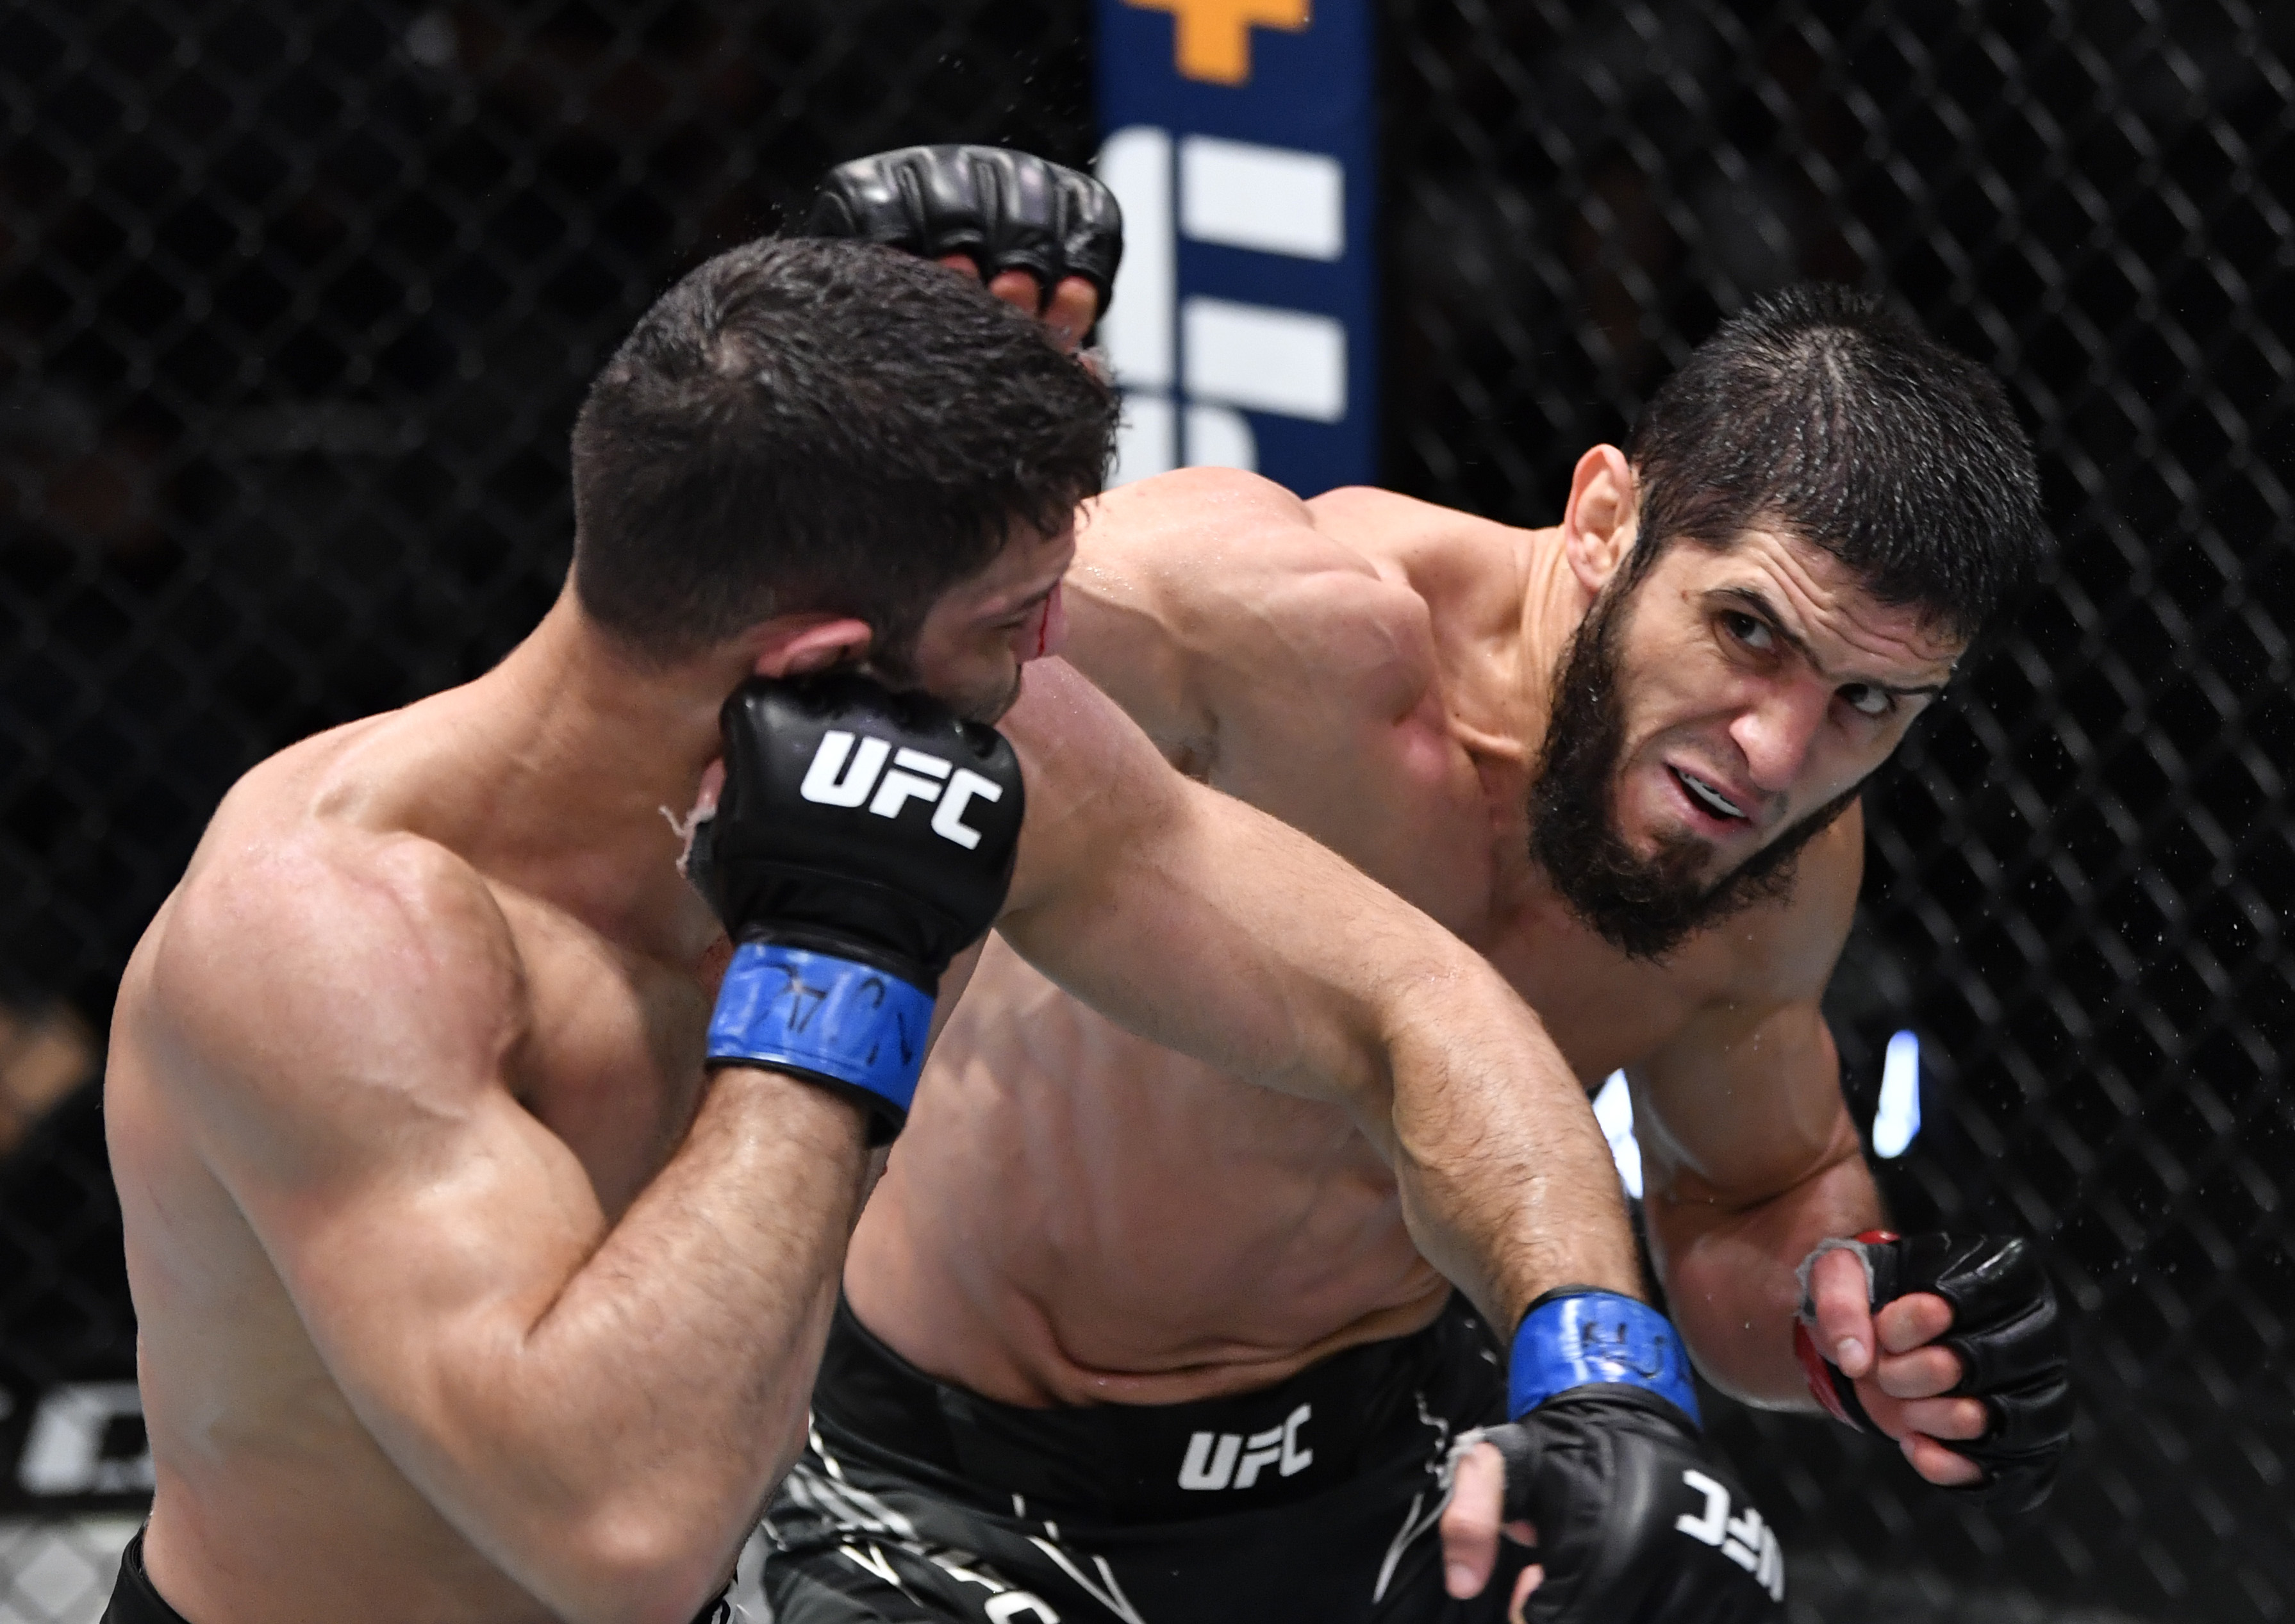 Islam Makhachev exchanging with Thiago Moises at UFC Vegas 31 on Saturday night.